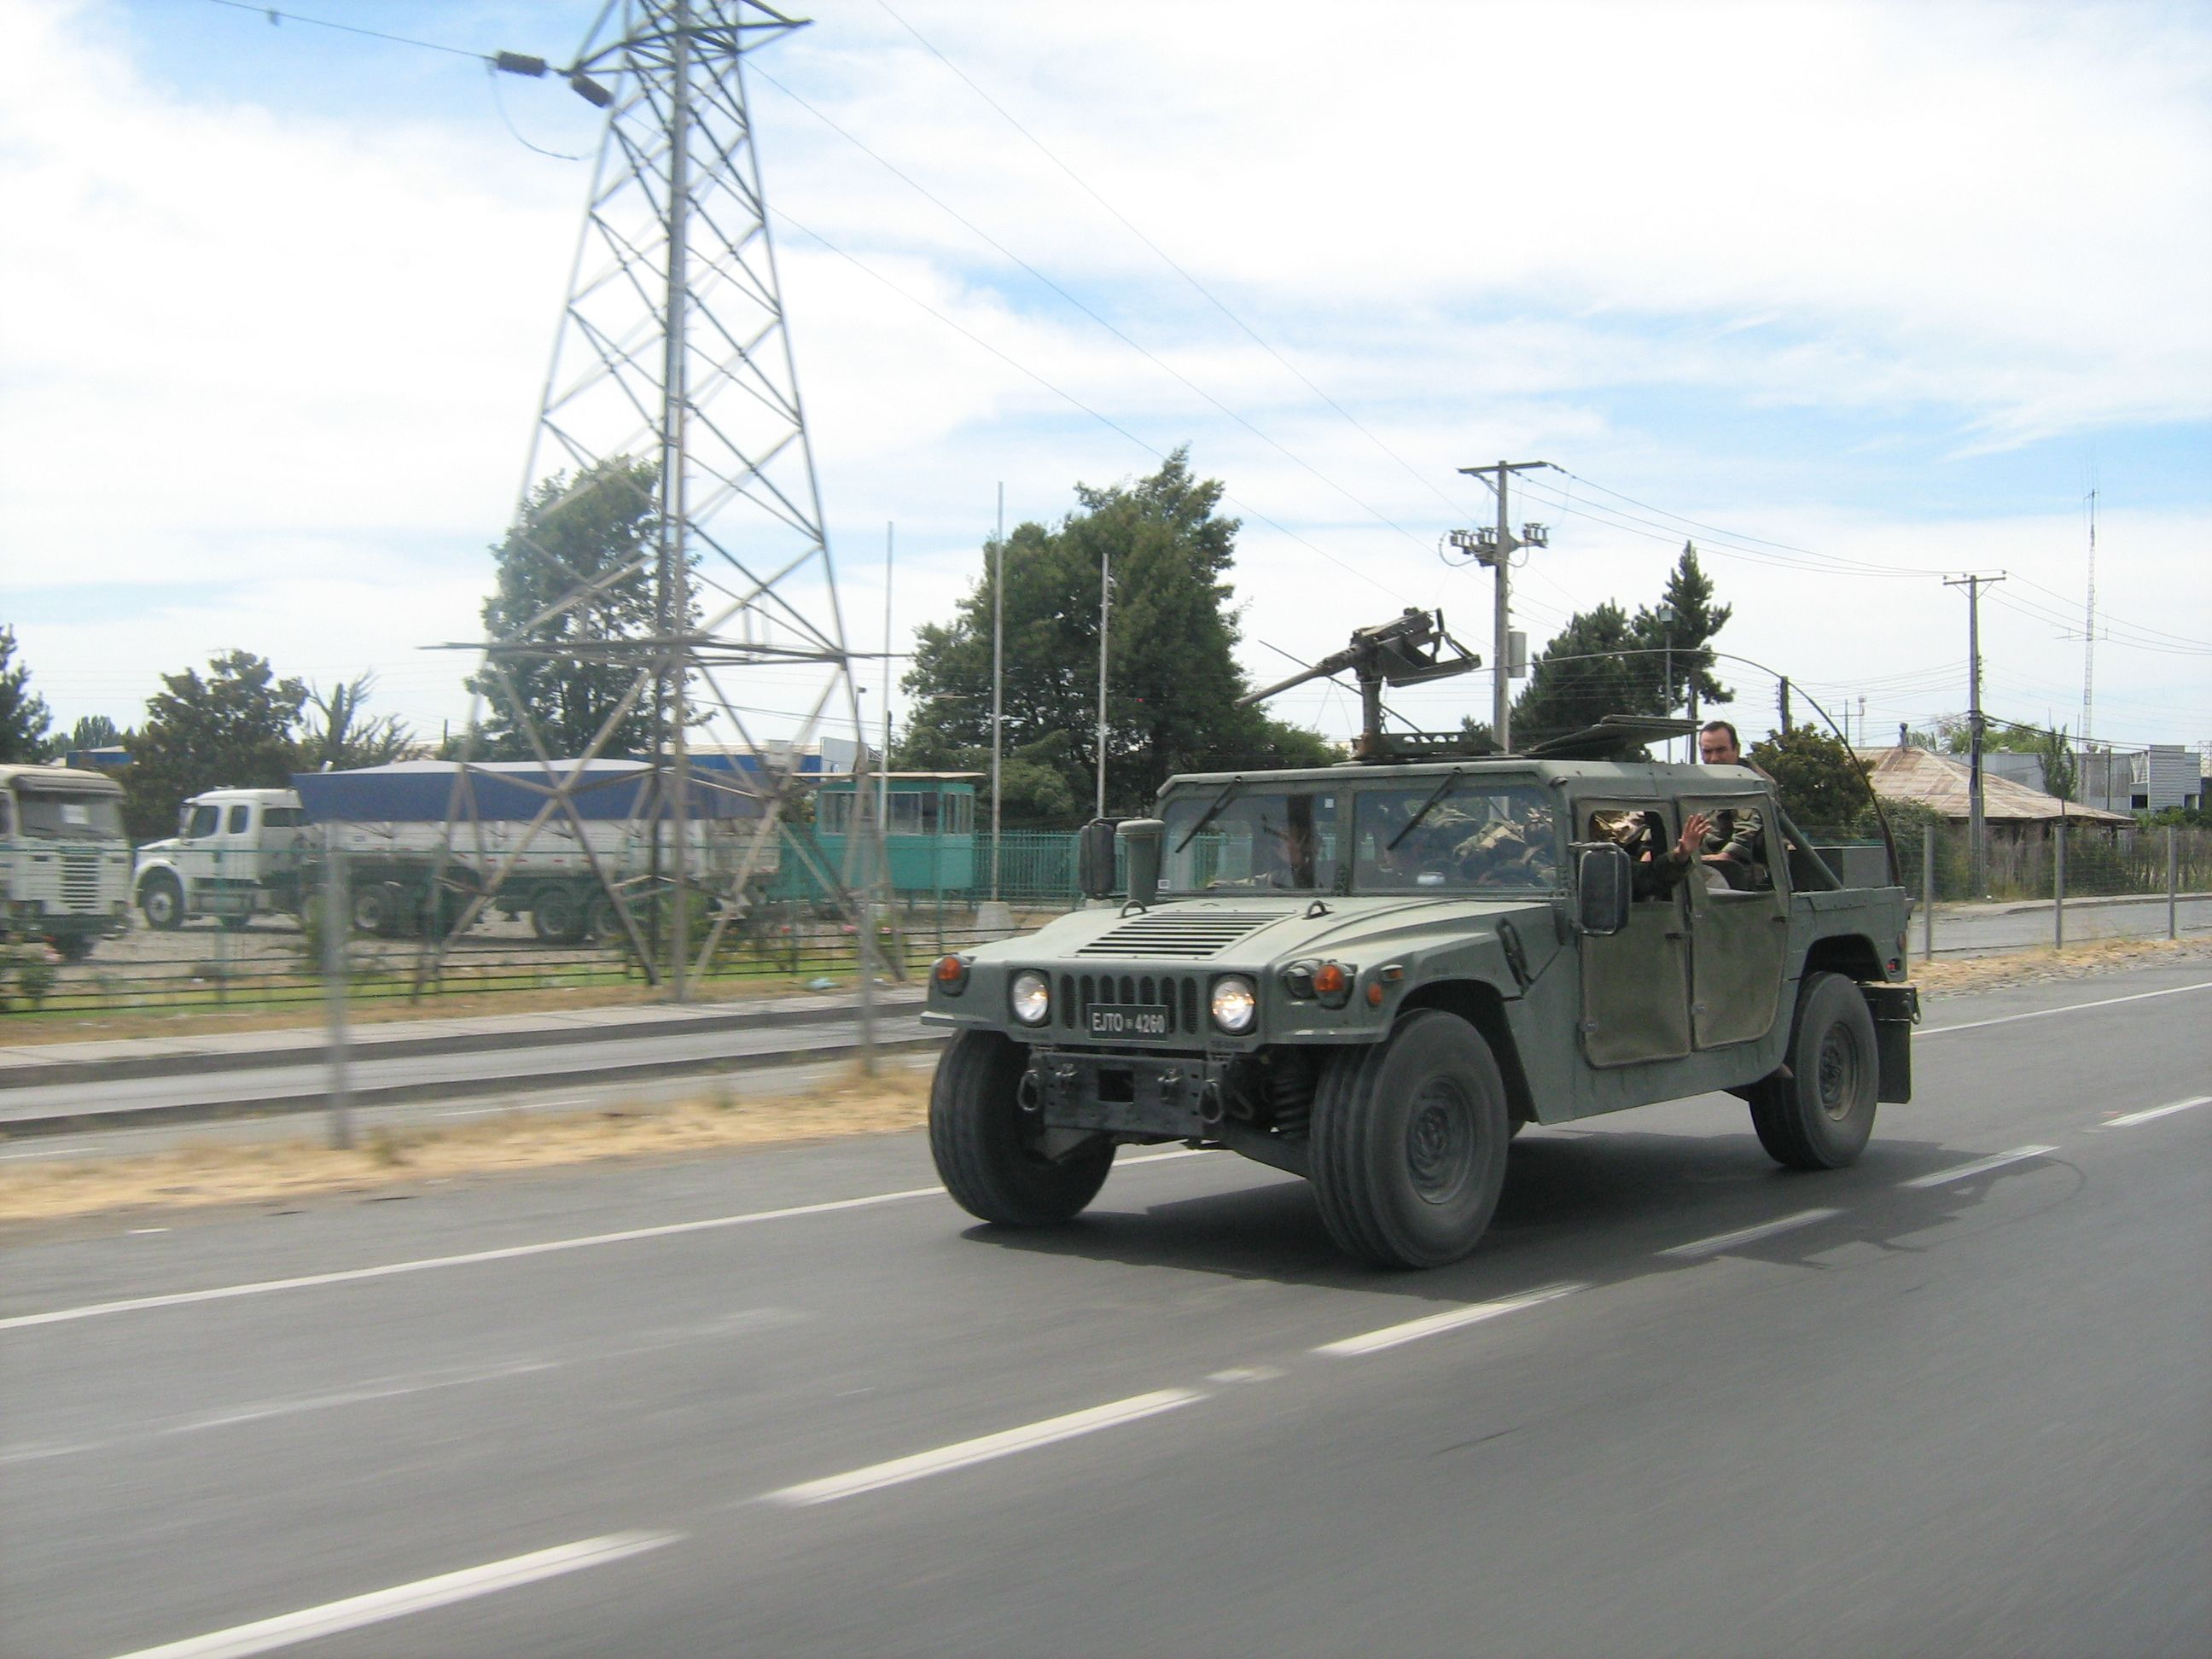 Who needs a sports car? Give me a humvee! Love these things. And sure, throw a .50 cal. on top of that bad boy. X)